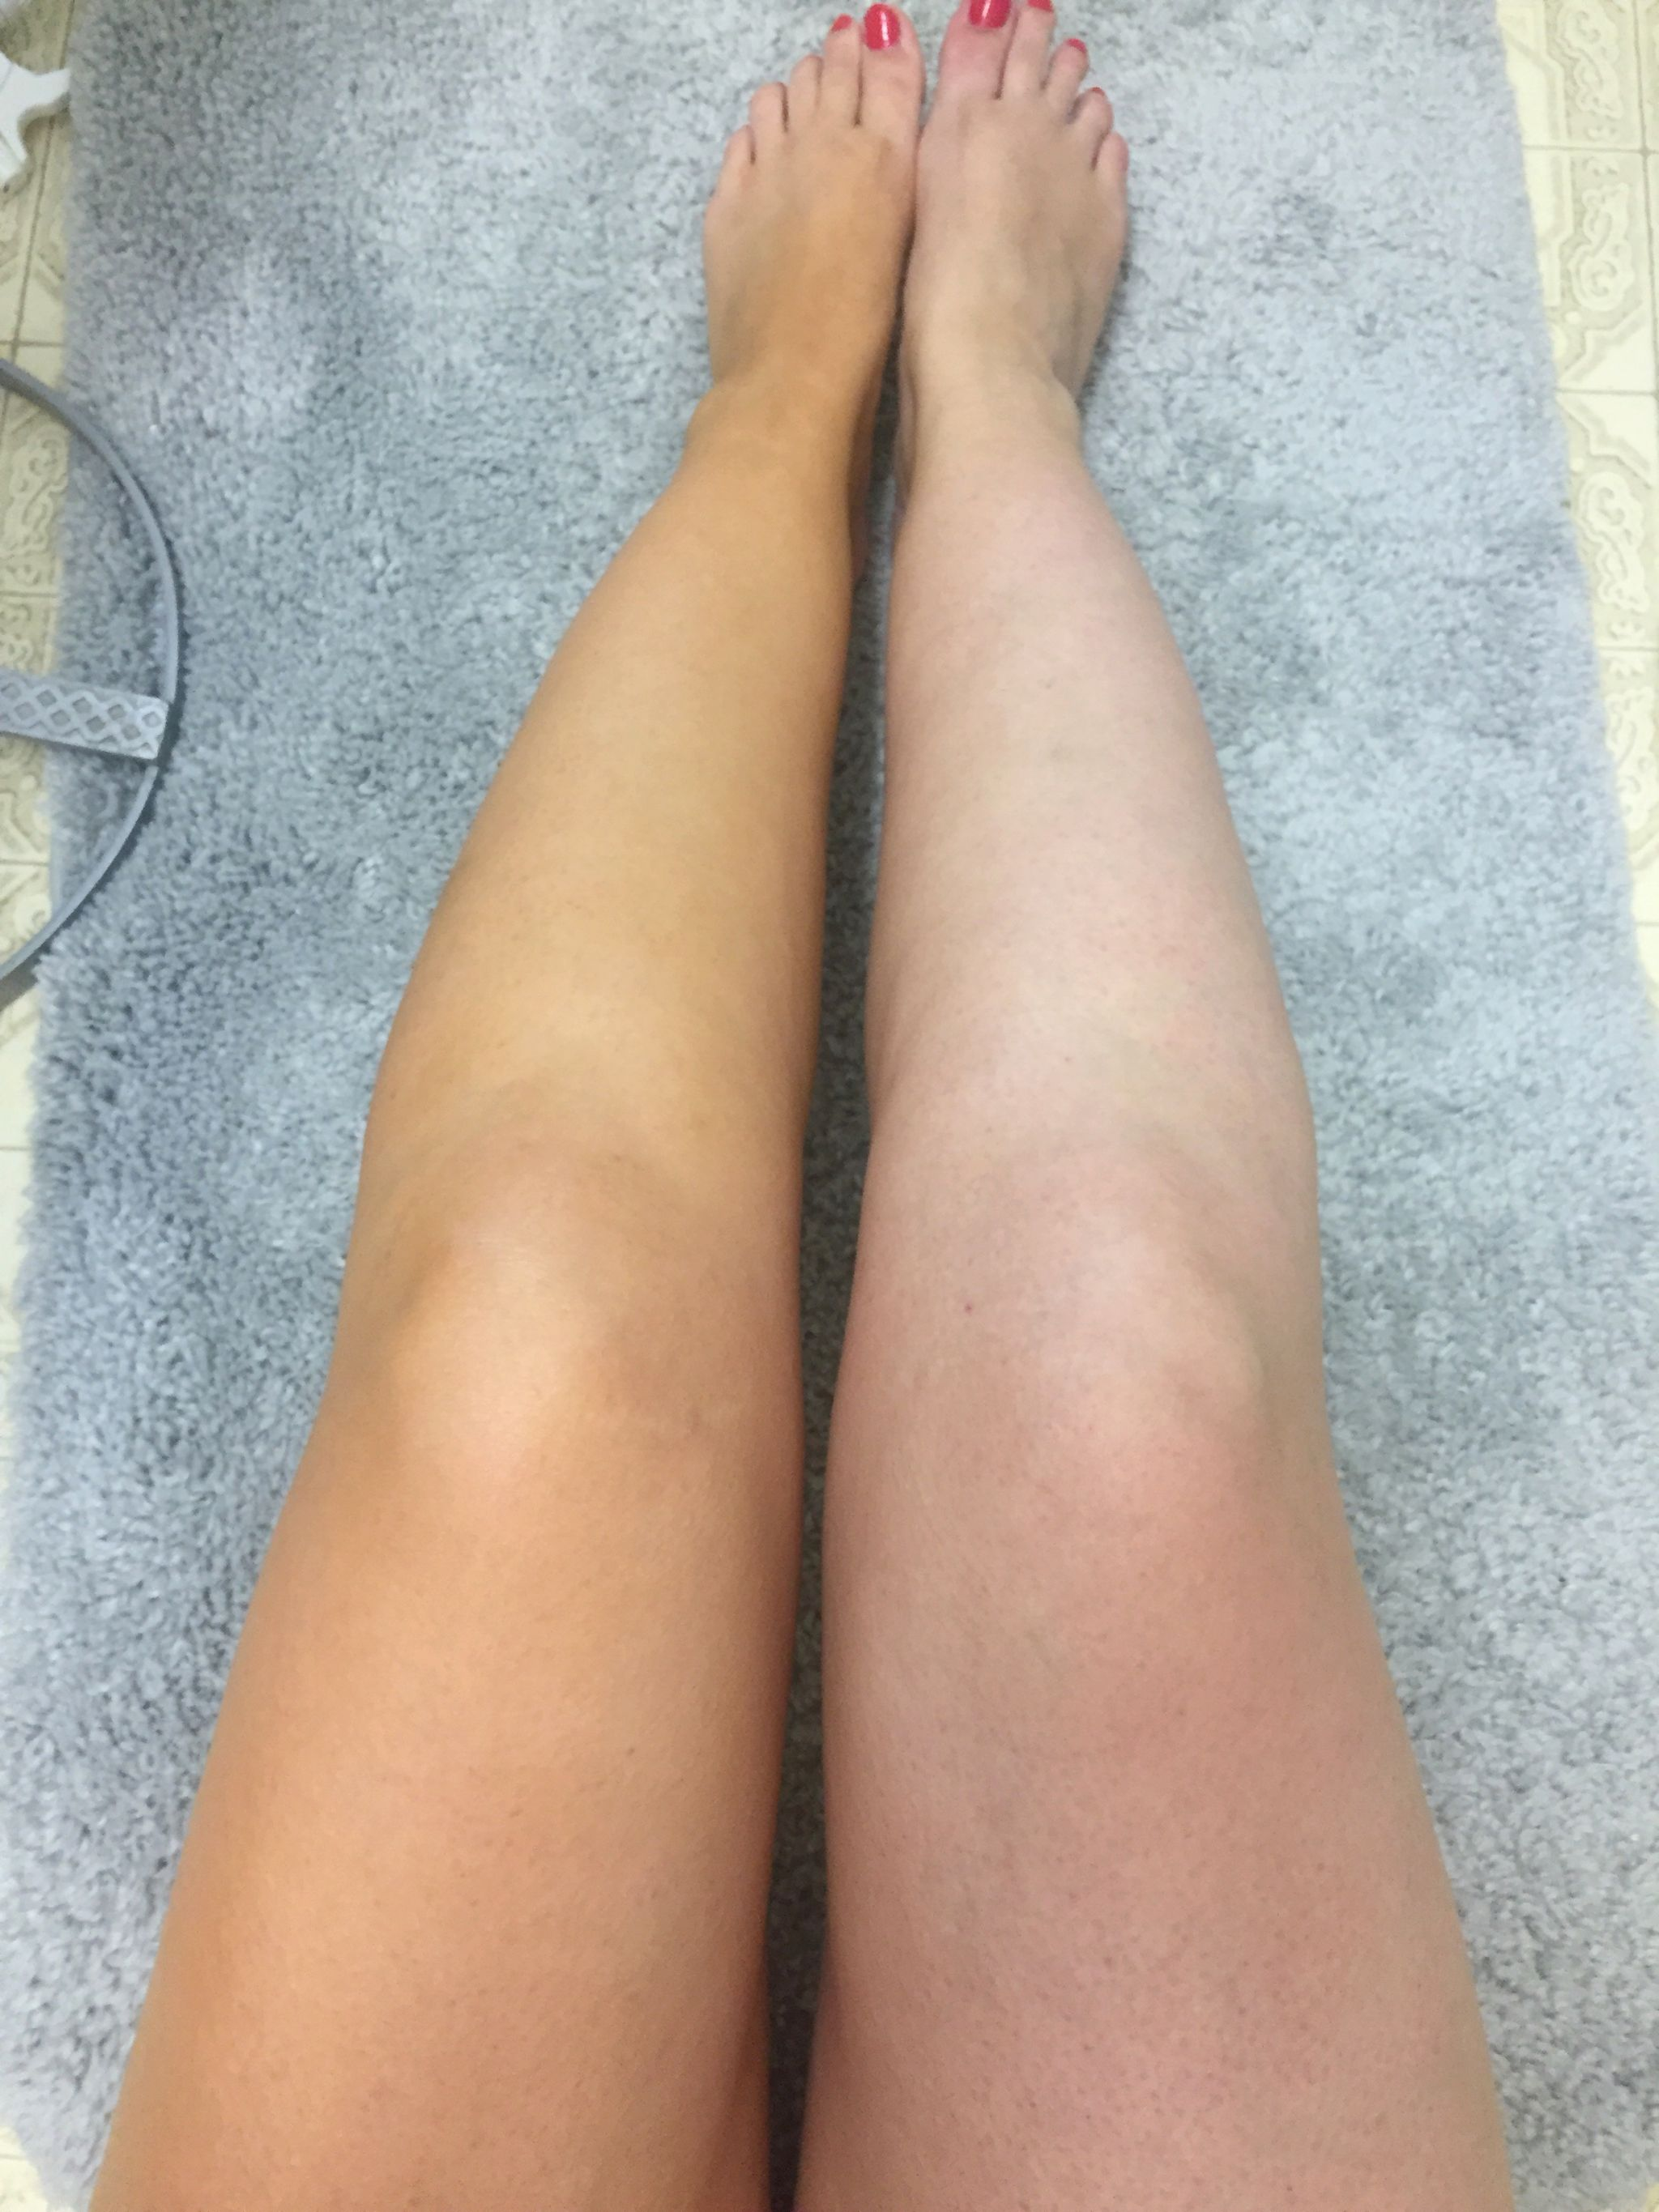 Sally Hansen Airbrush Legs Before and After